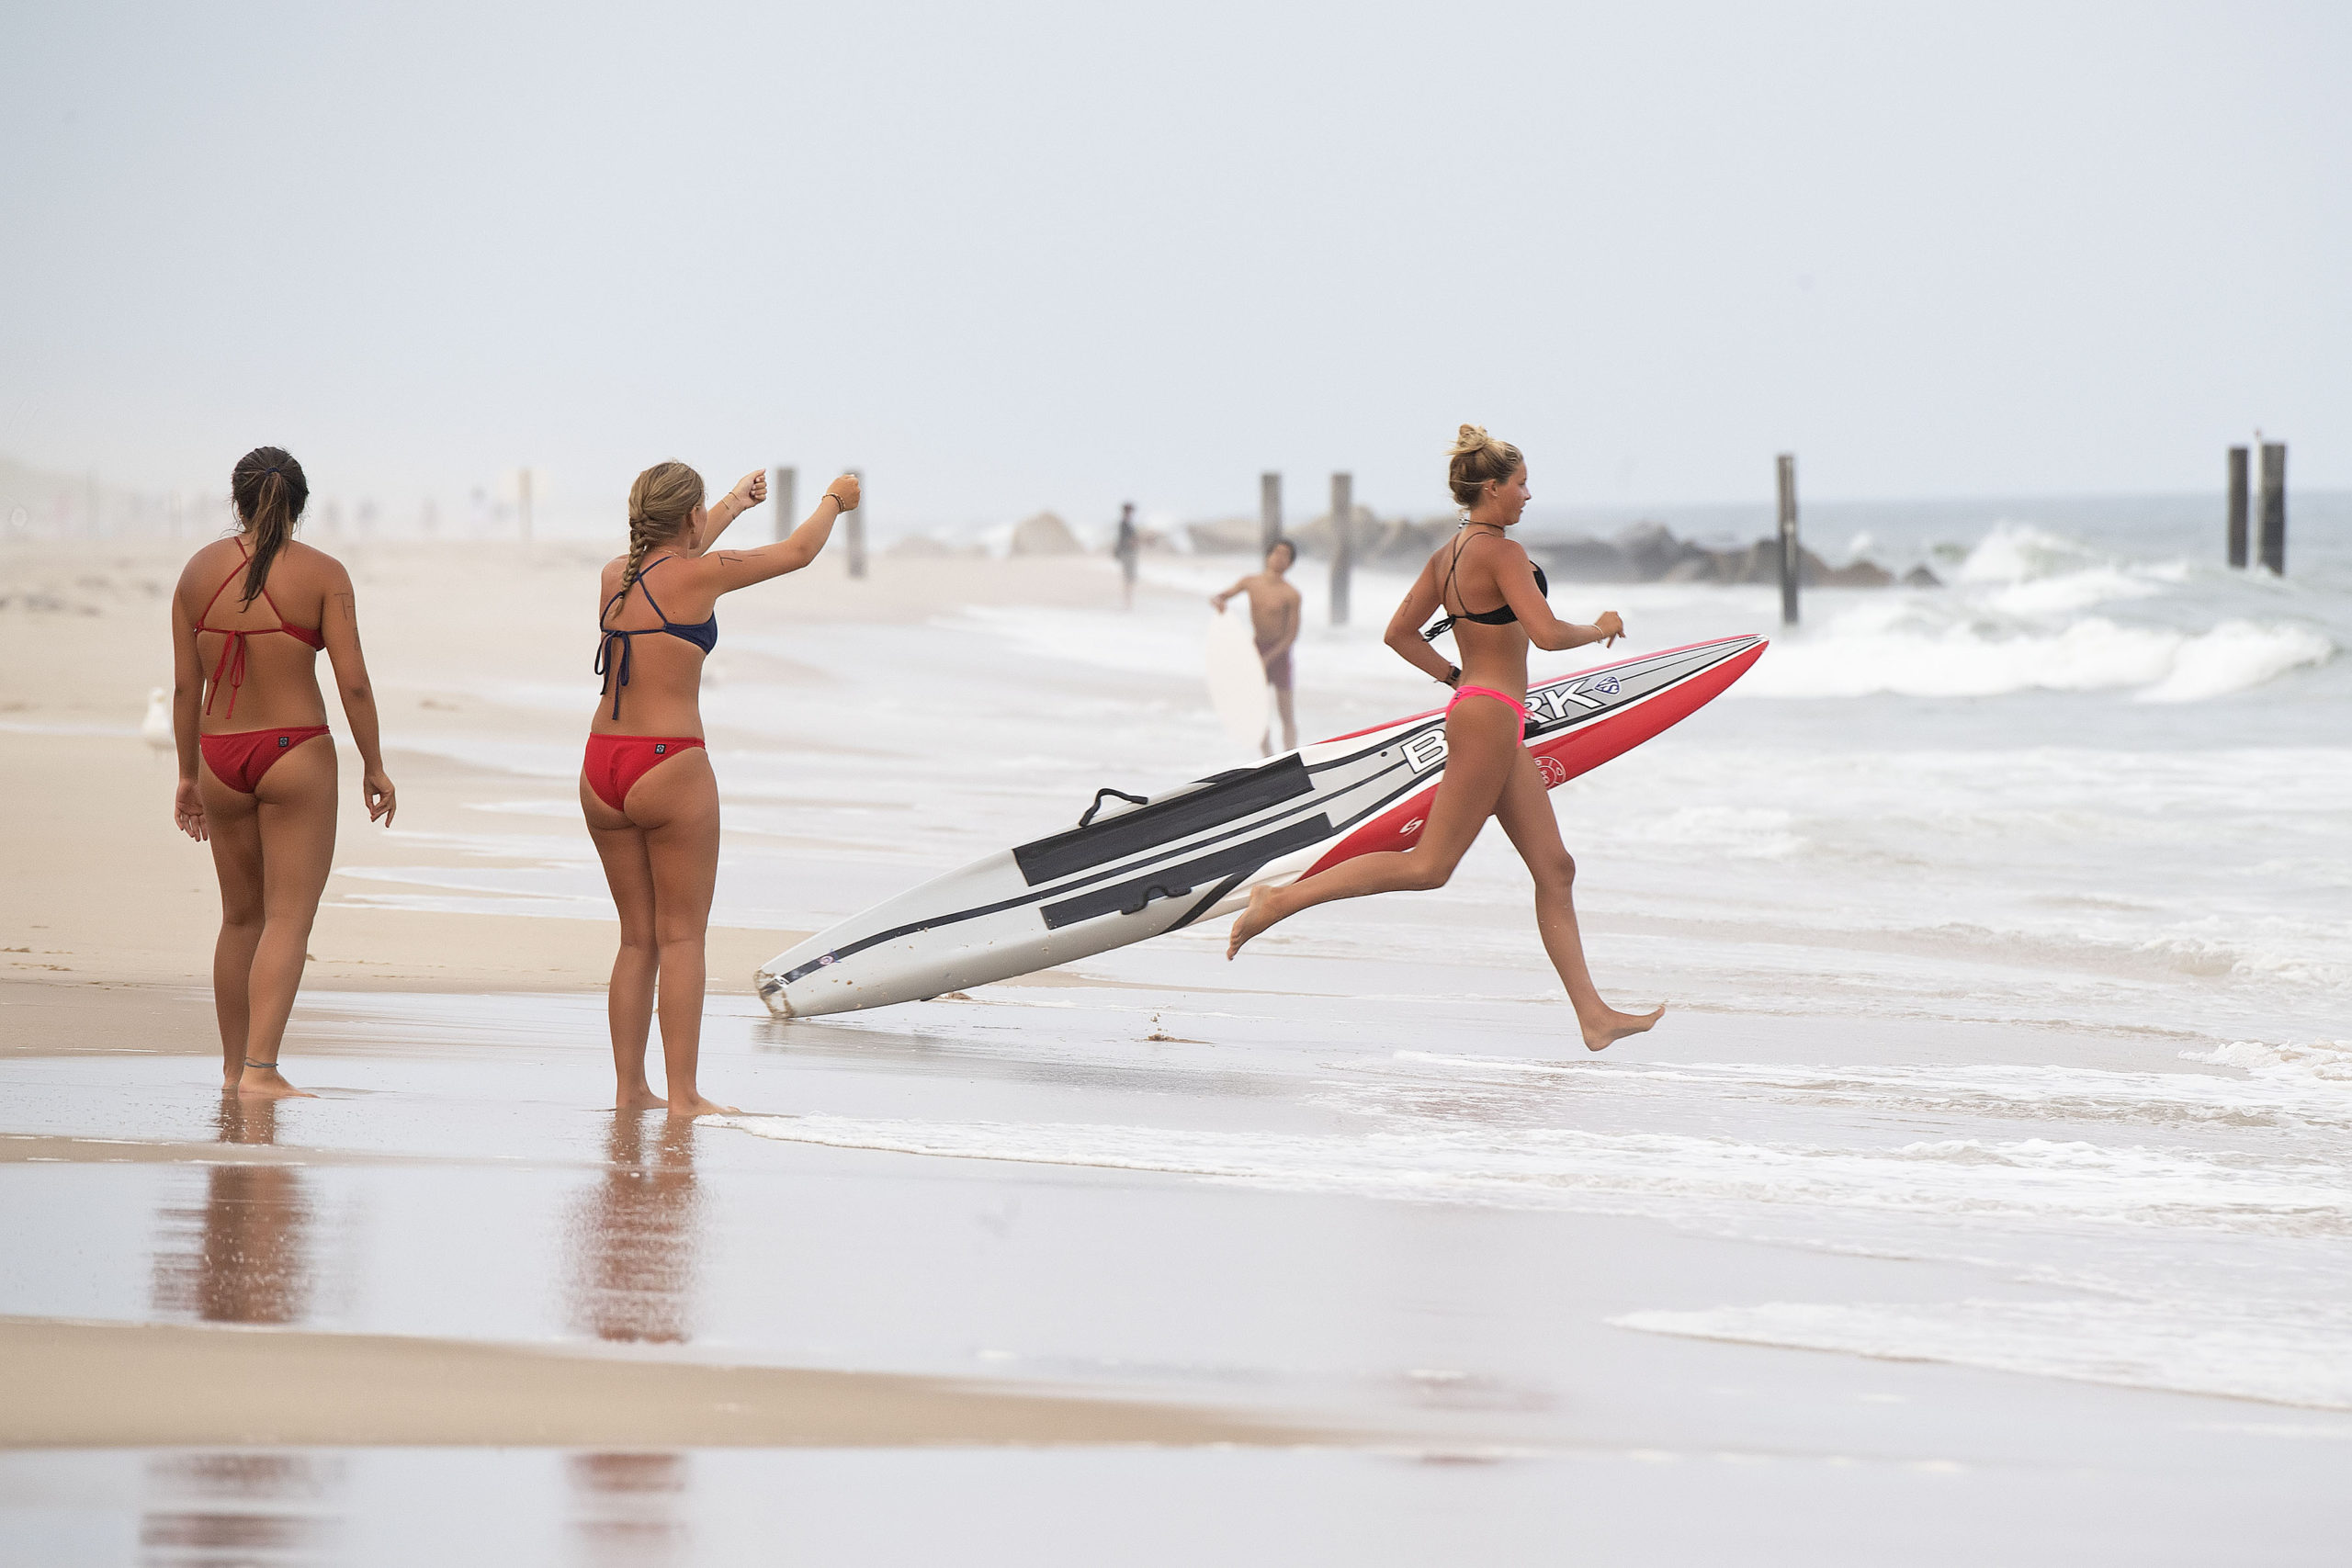 A Southampton Town lifeguard rushes into the water during the rescue board relay.